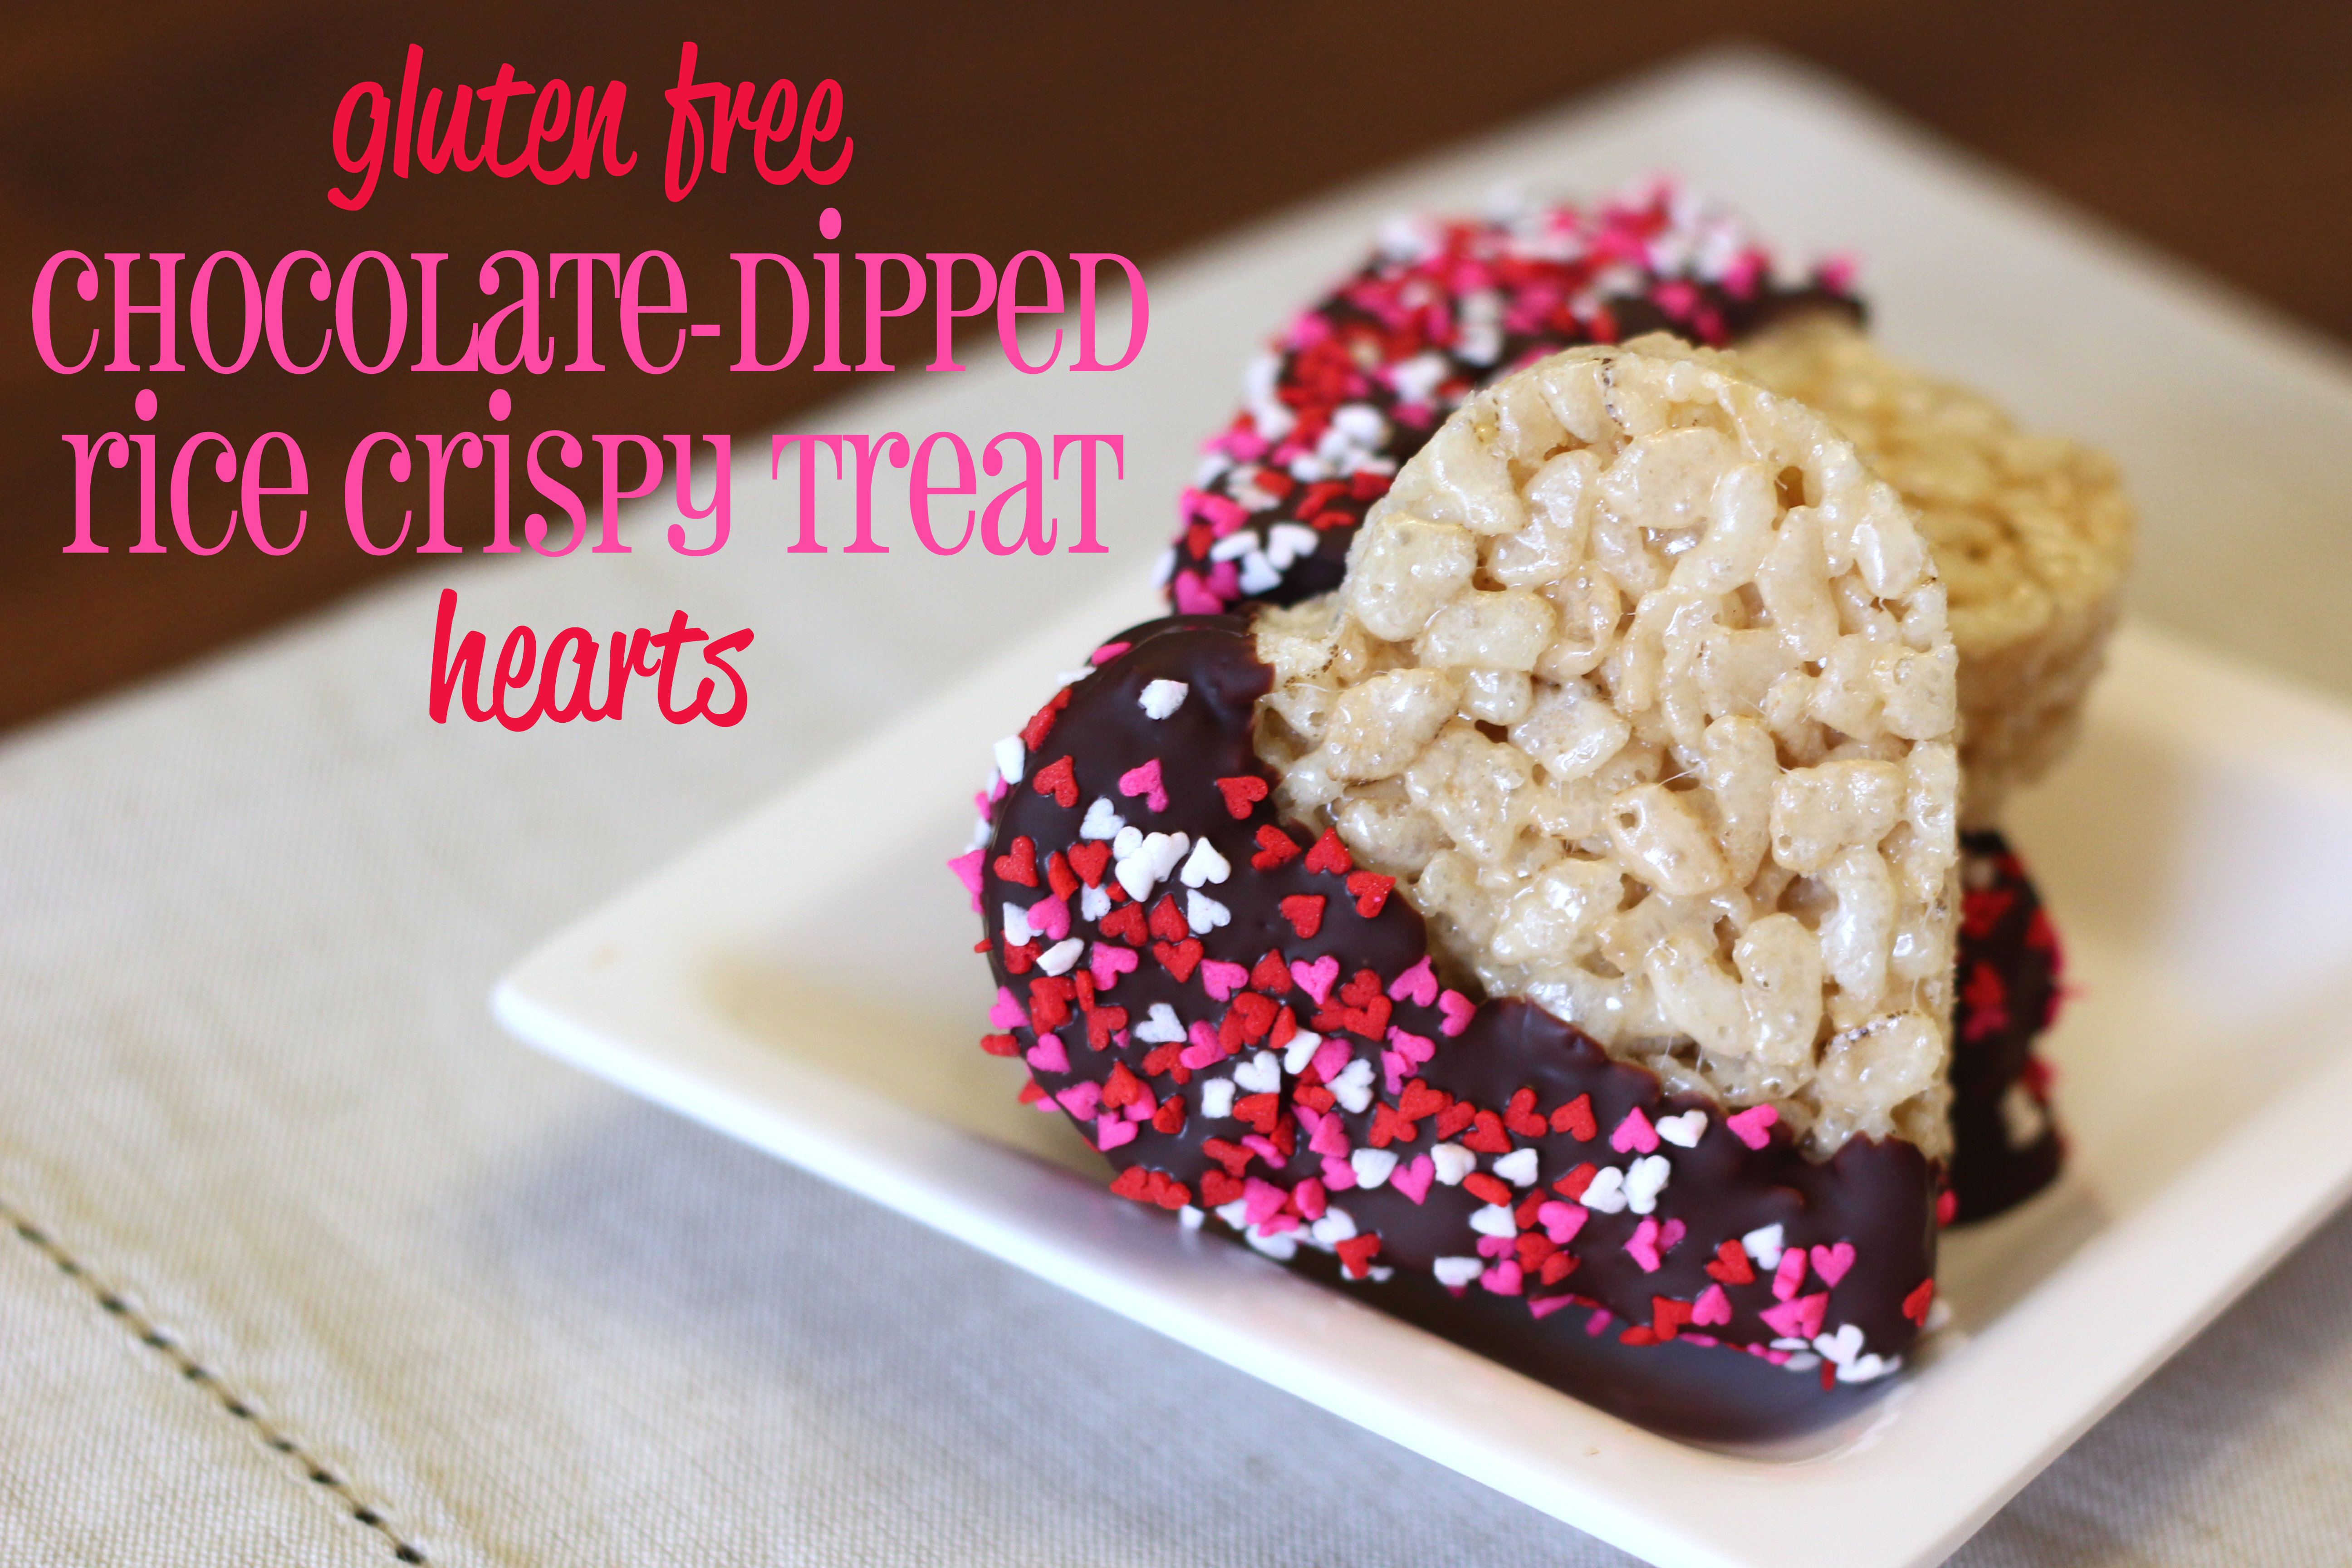 Chocolate-Dipped Rice Crispy Treat Hearts - Ask Anna